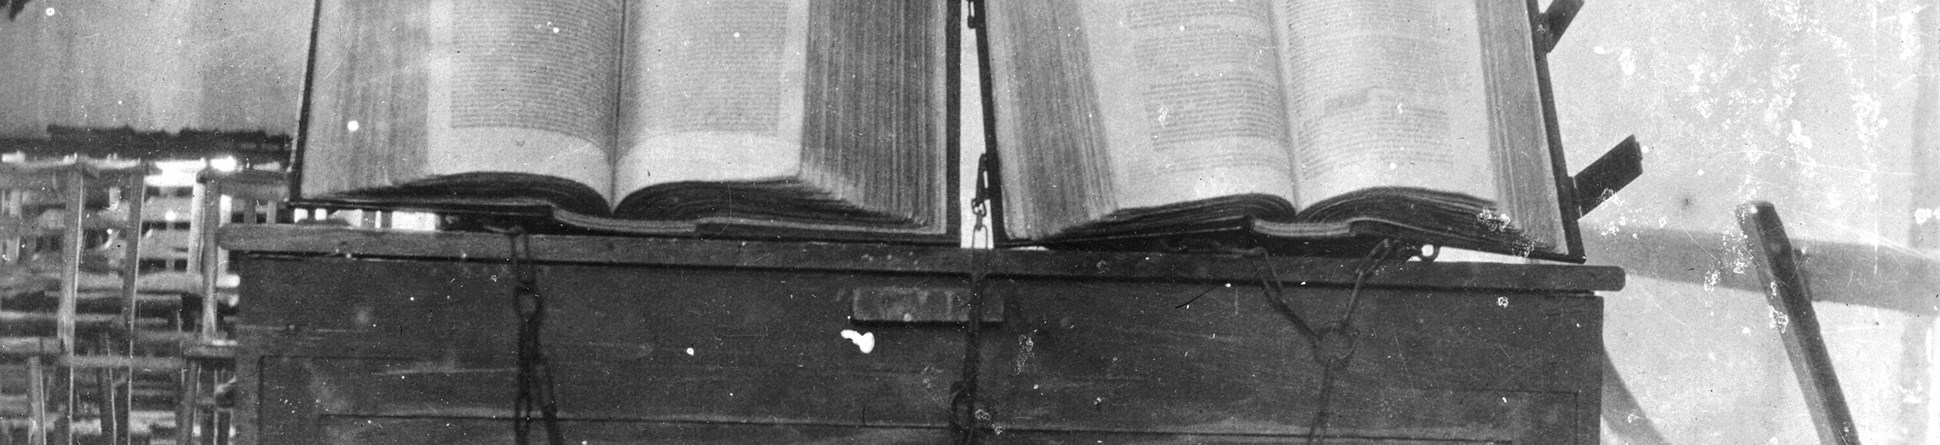 Two books chained to a desk inside St Michael's Church Blewbury, in 1909.